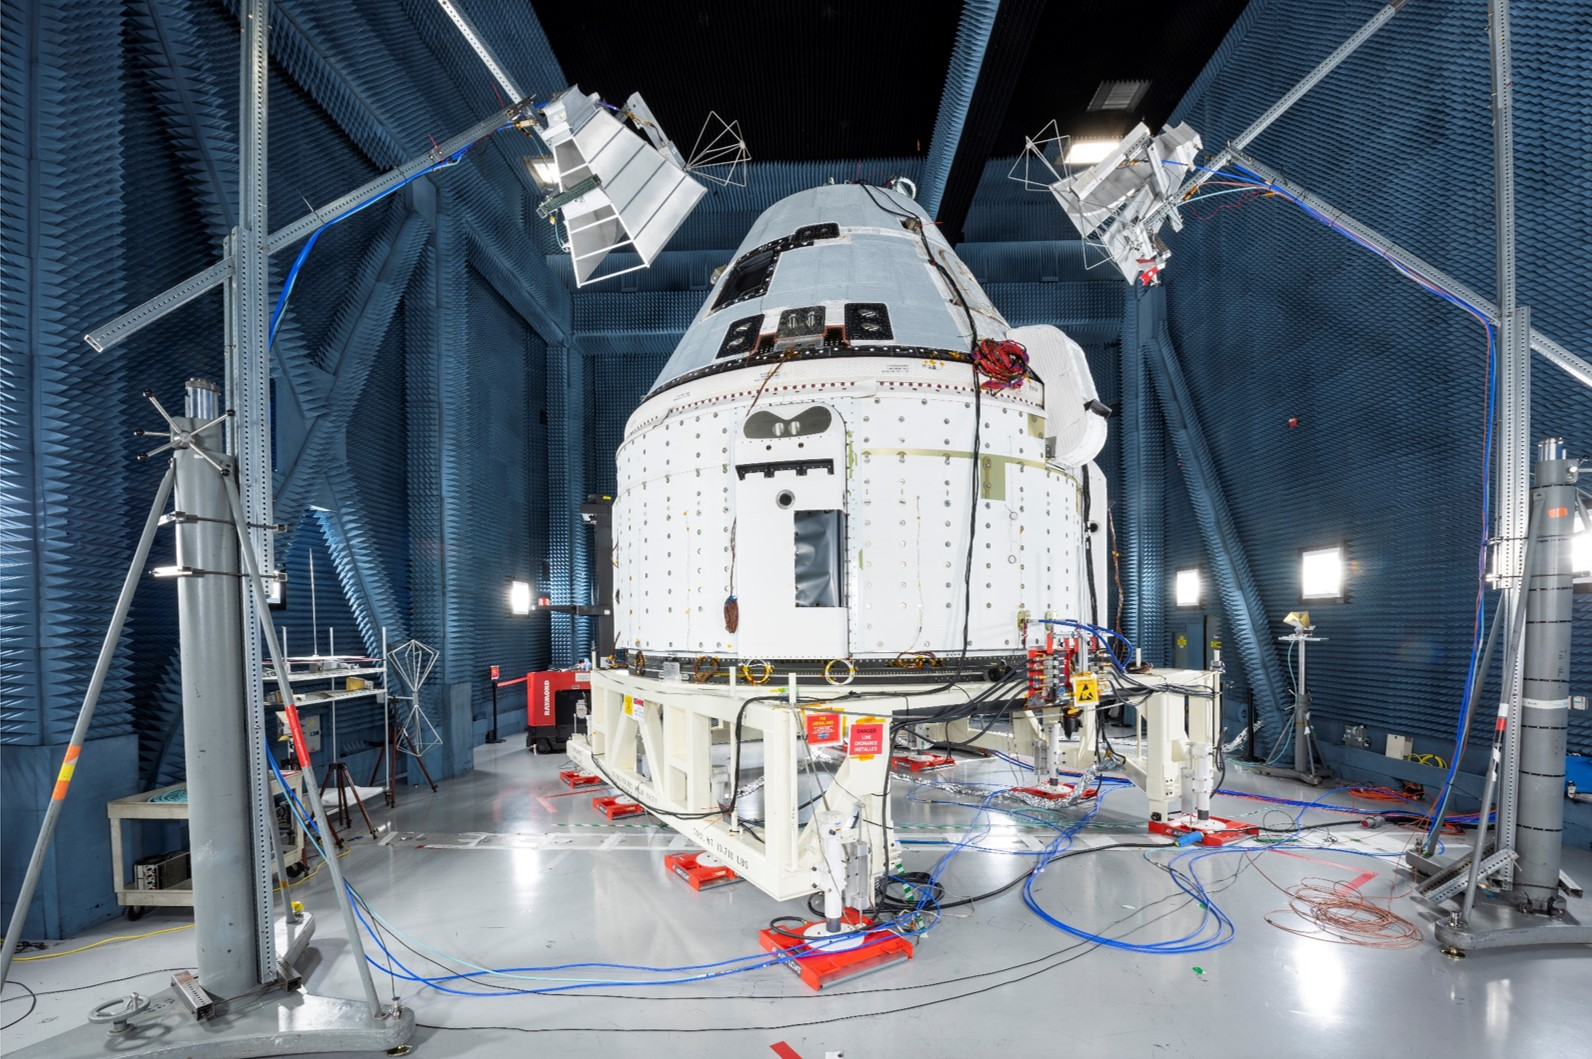 Boeing's CST-100 Starliner prepares for electromagnetic interference and electromagnetic contamination (EMI/EMC) testing in a specialized test chamber